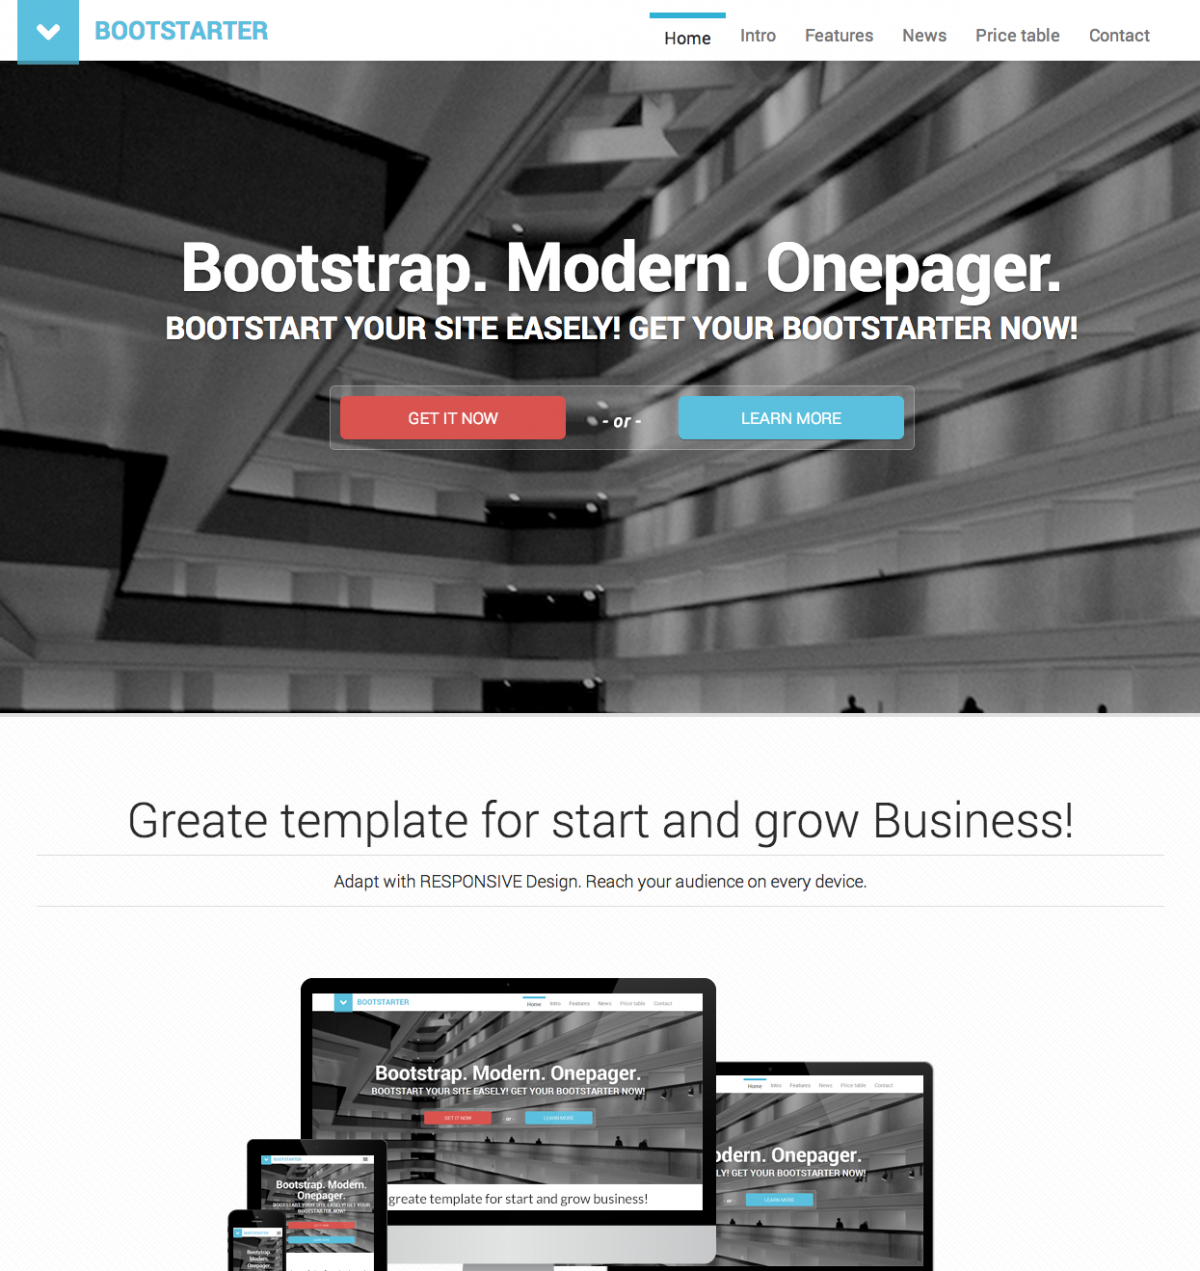 Design Deal: 10 Premium Responsive Bootstrap Templates - only $10!